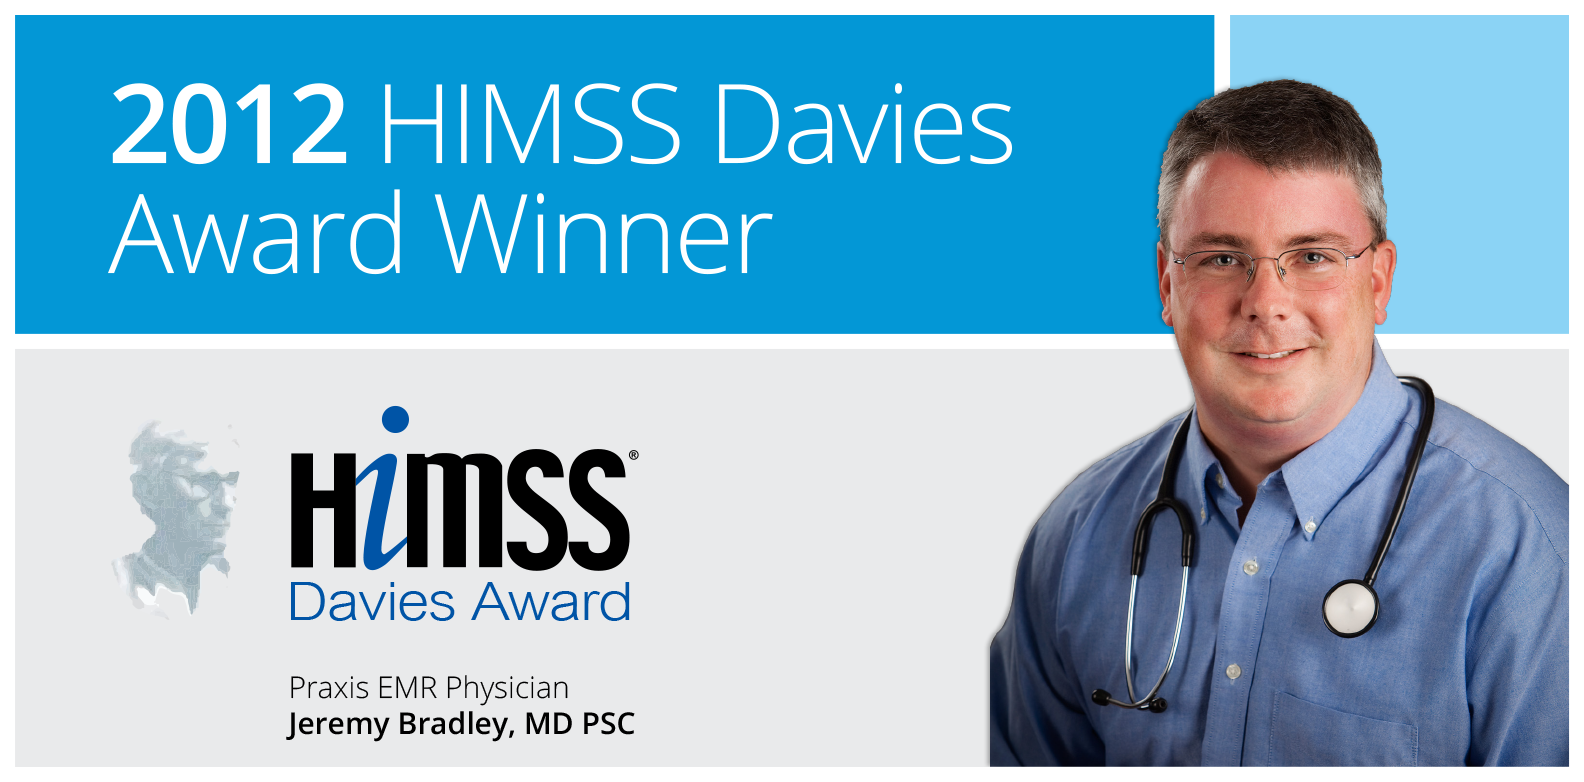 Himss Davies Award 2012 - Praxis EMR user Jeremy Bradley, MD